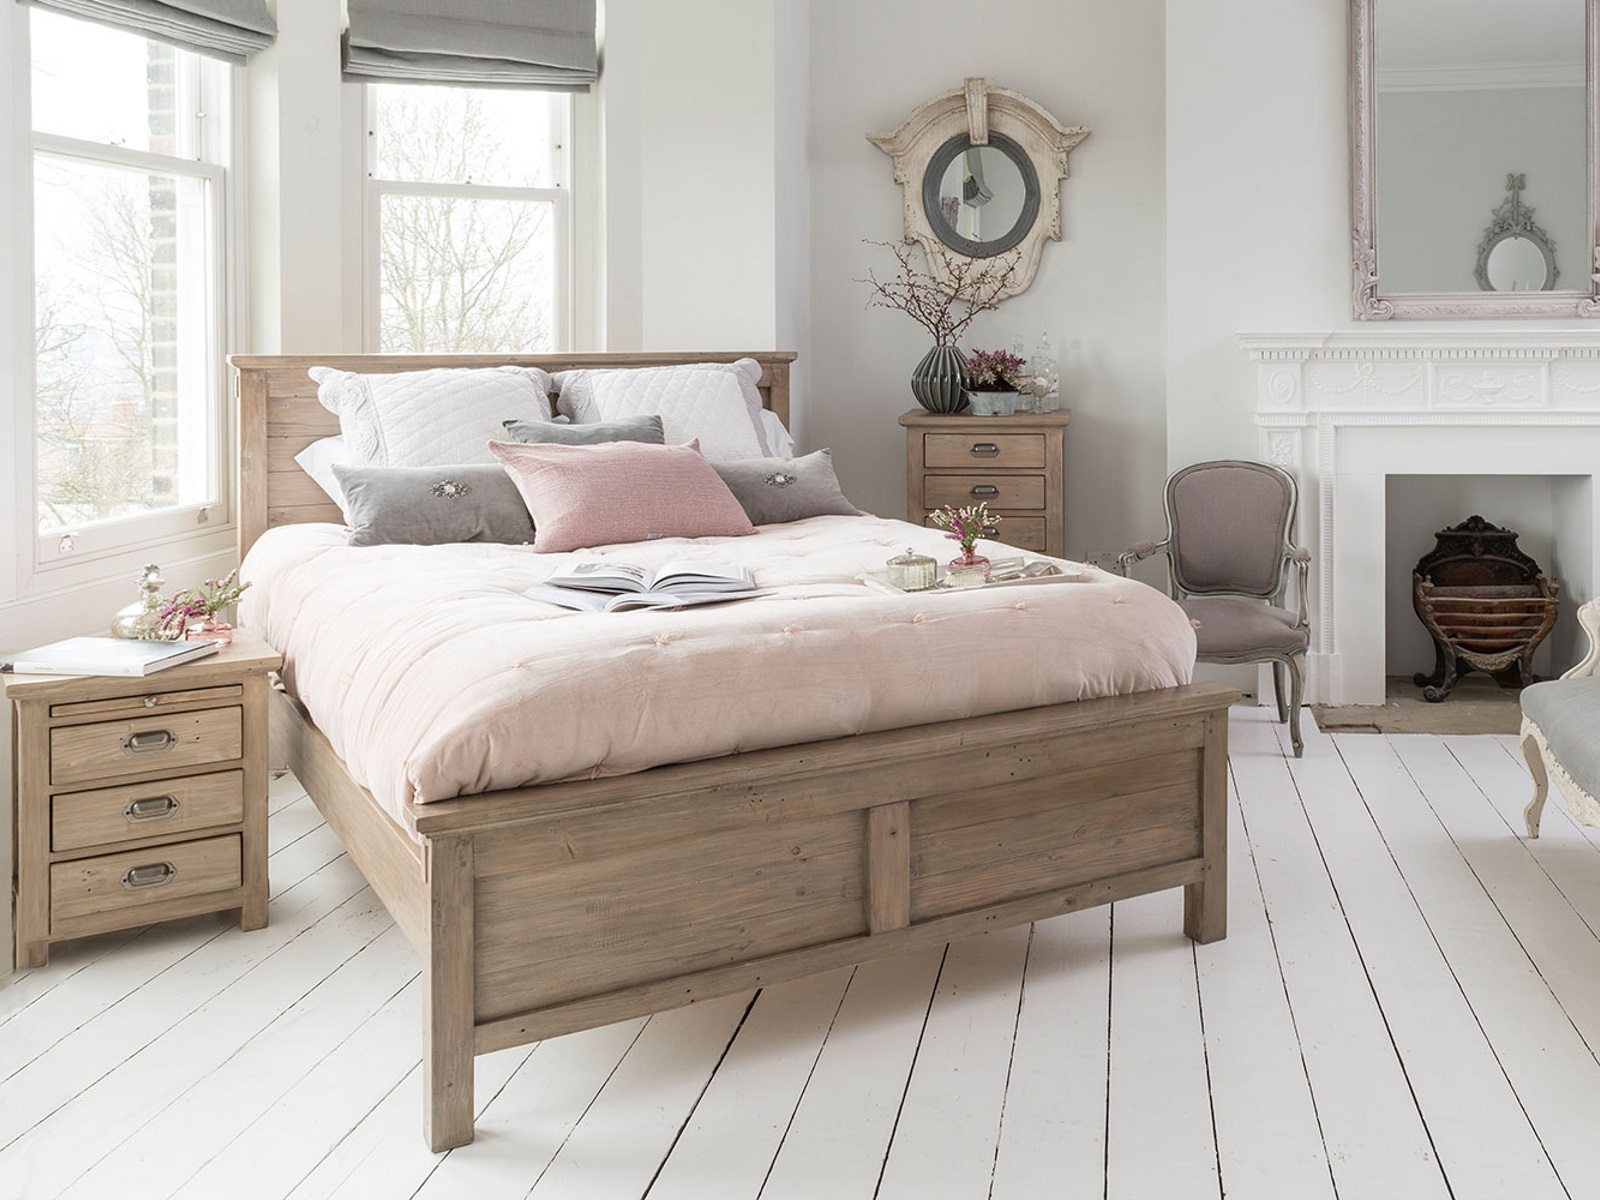 The perfect night's sleep Blog 16 March 2018